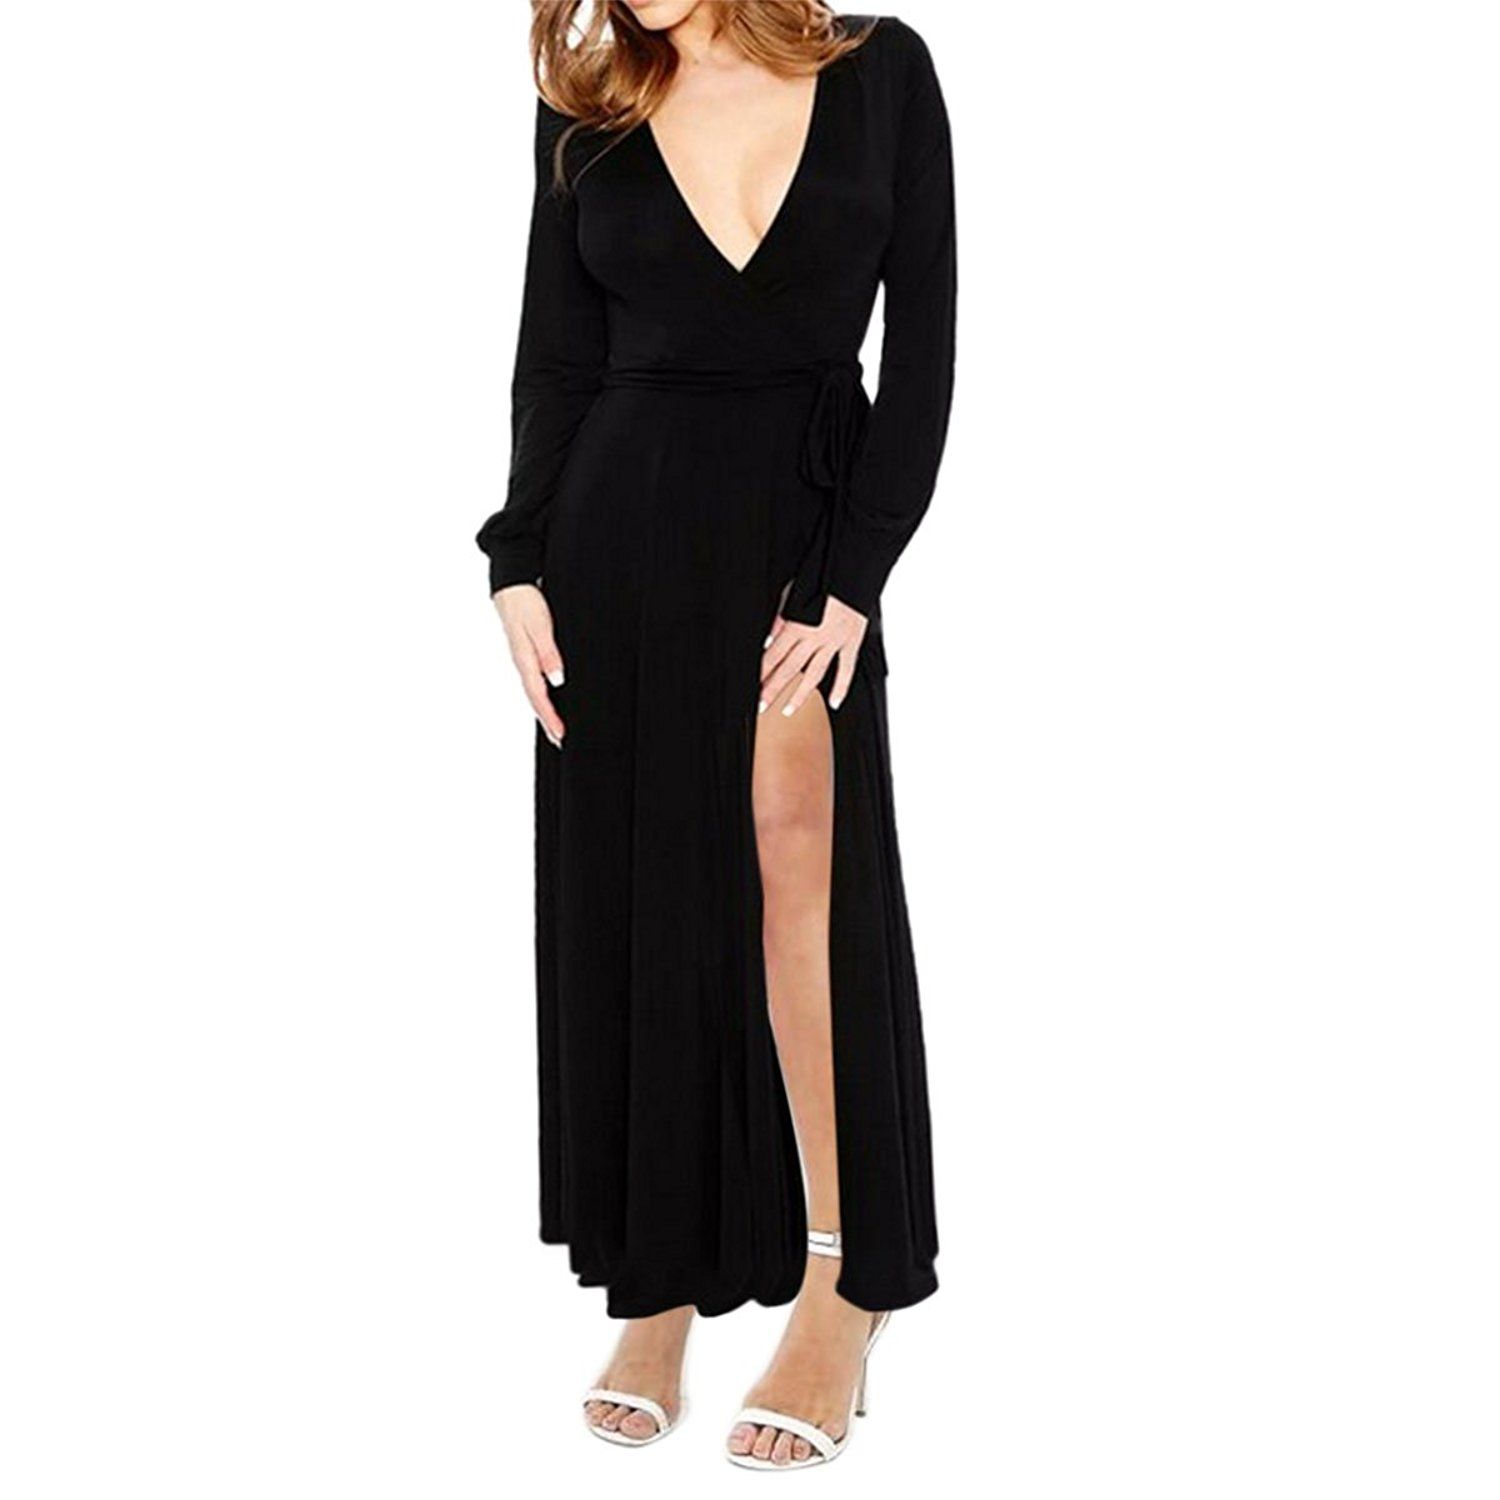 Sueandjoe womenus maxi dress deep vneck front high slit long sleeve